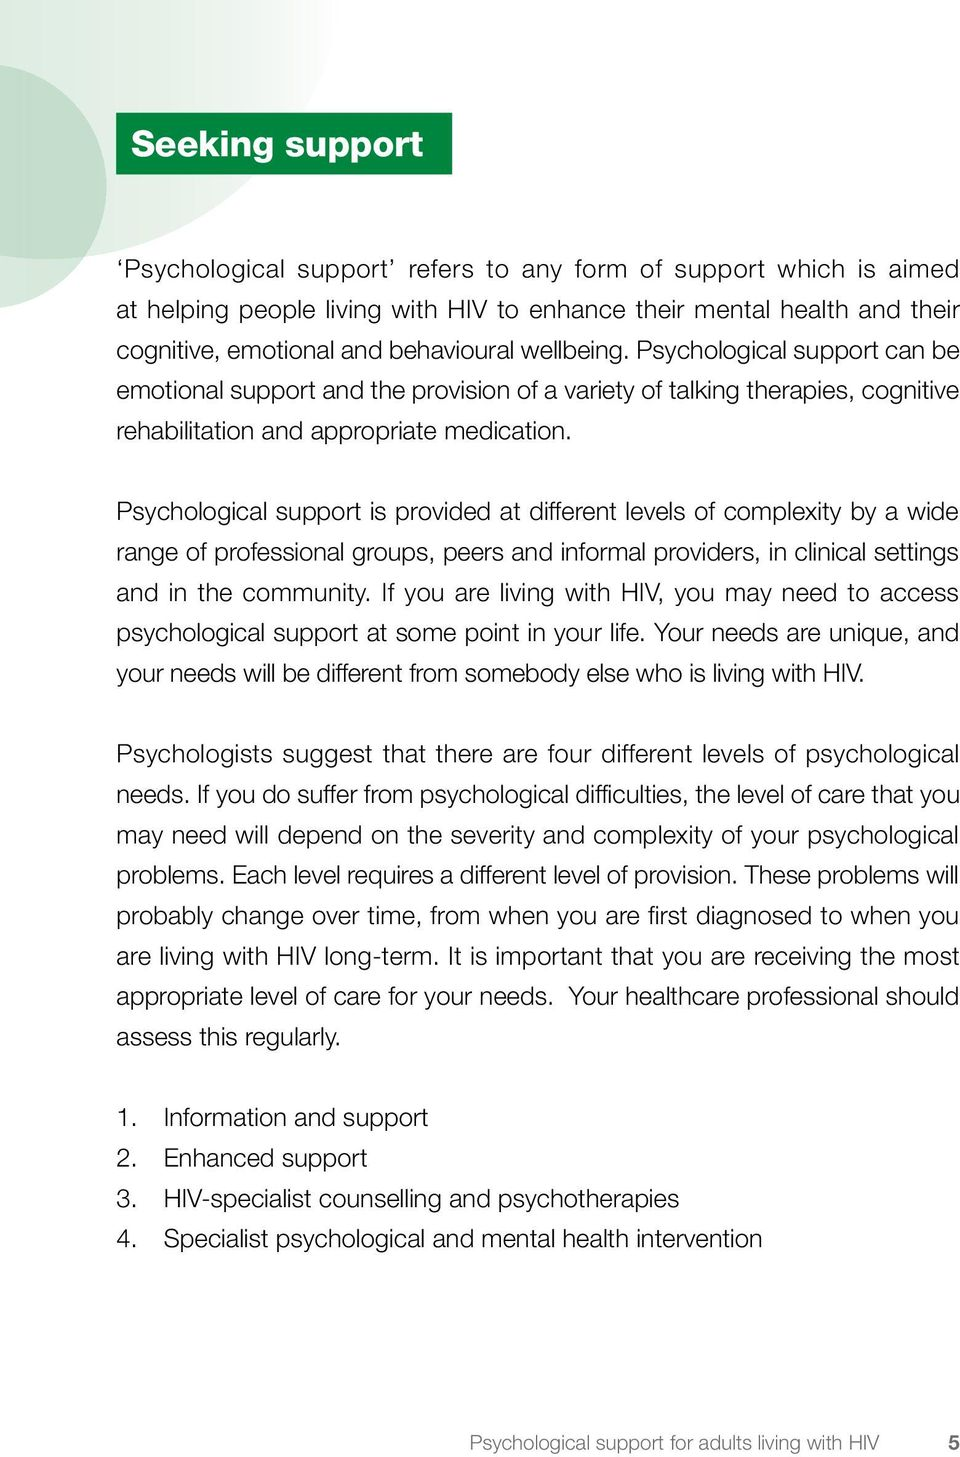 Psychological support is provided at different levels of complexity by a wide range of professional groups, peers and informal providers, in clinical settings and in the community.